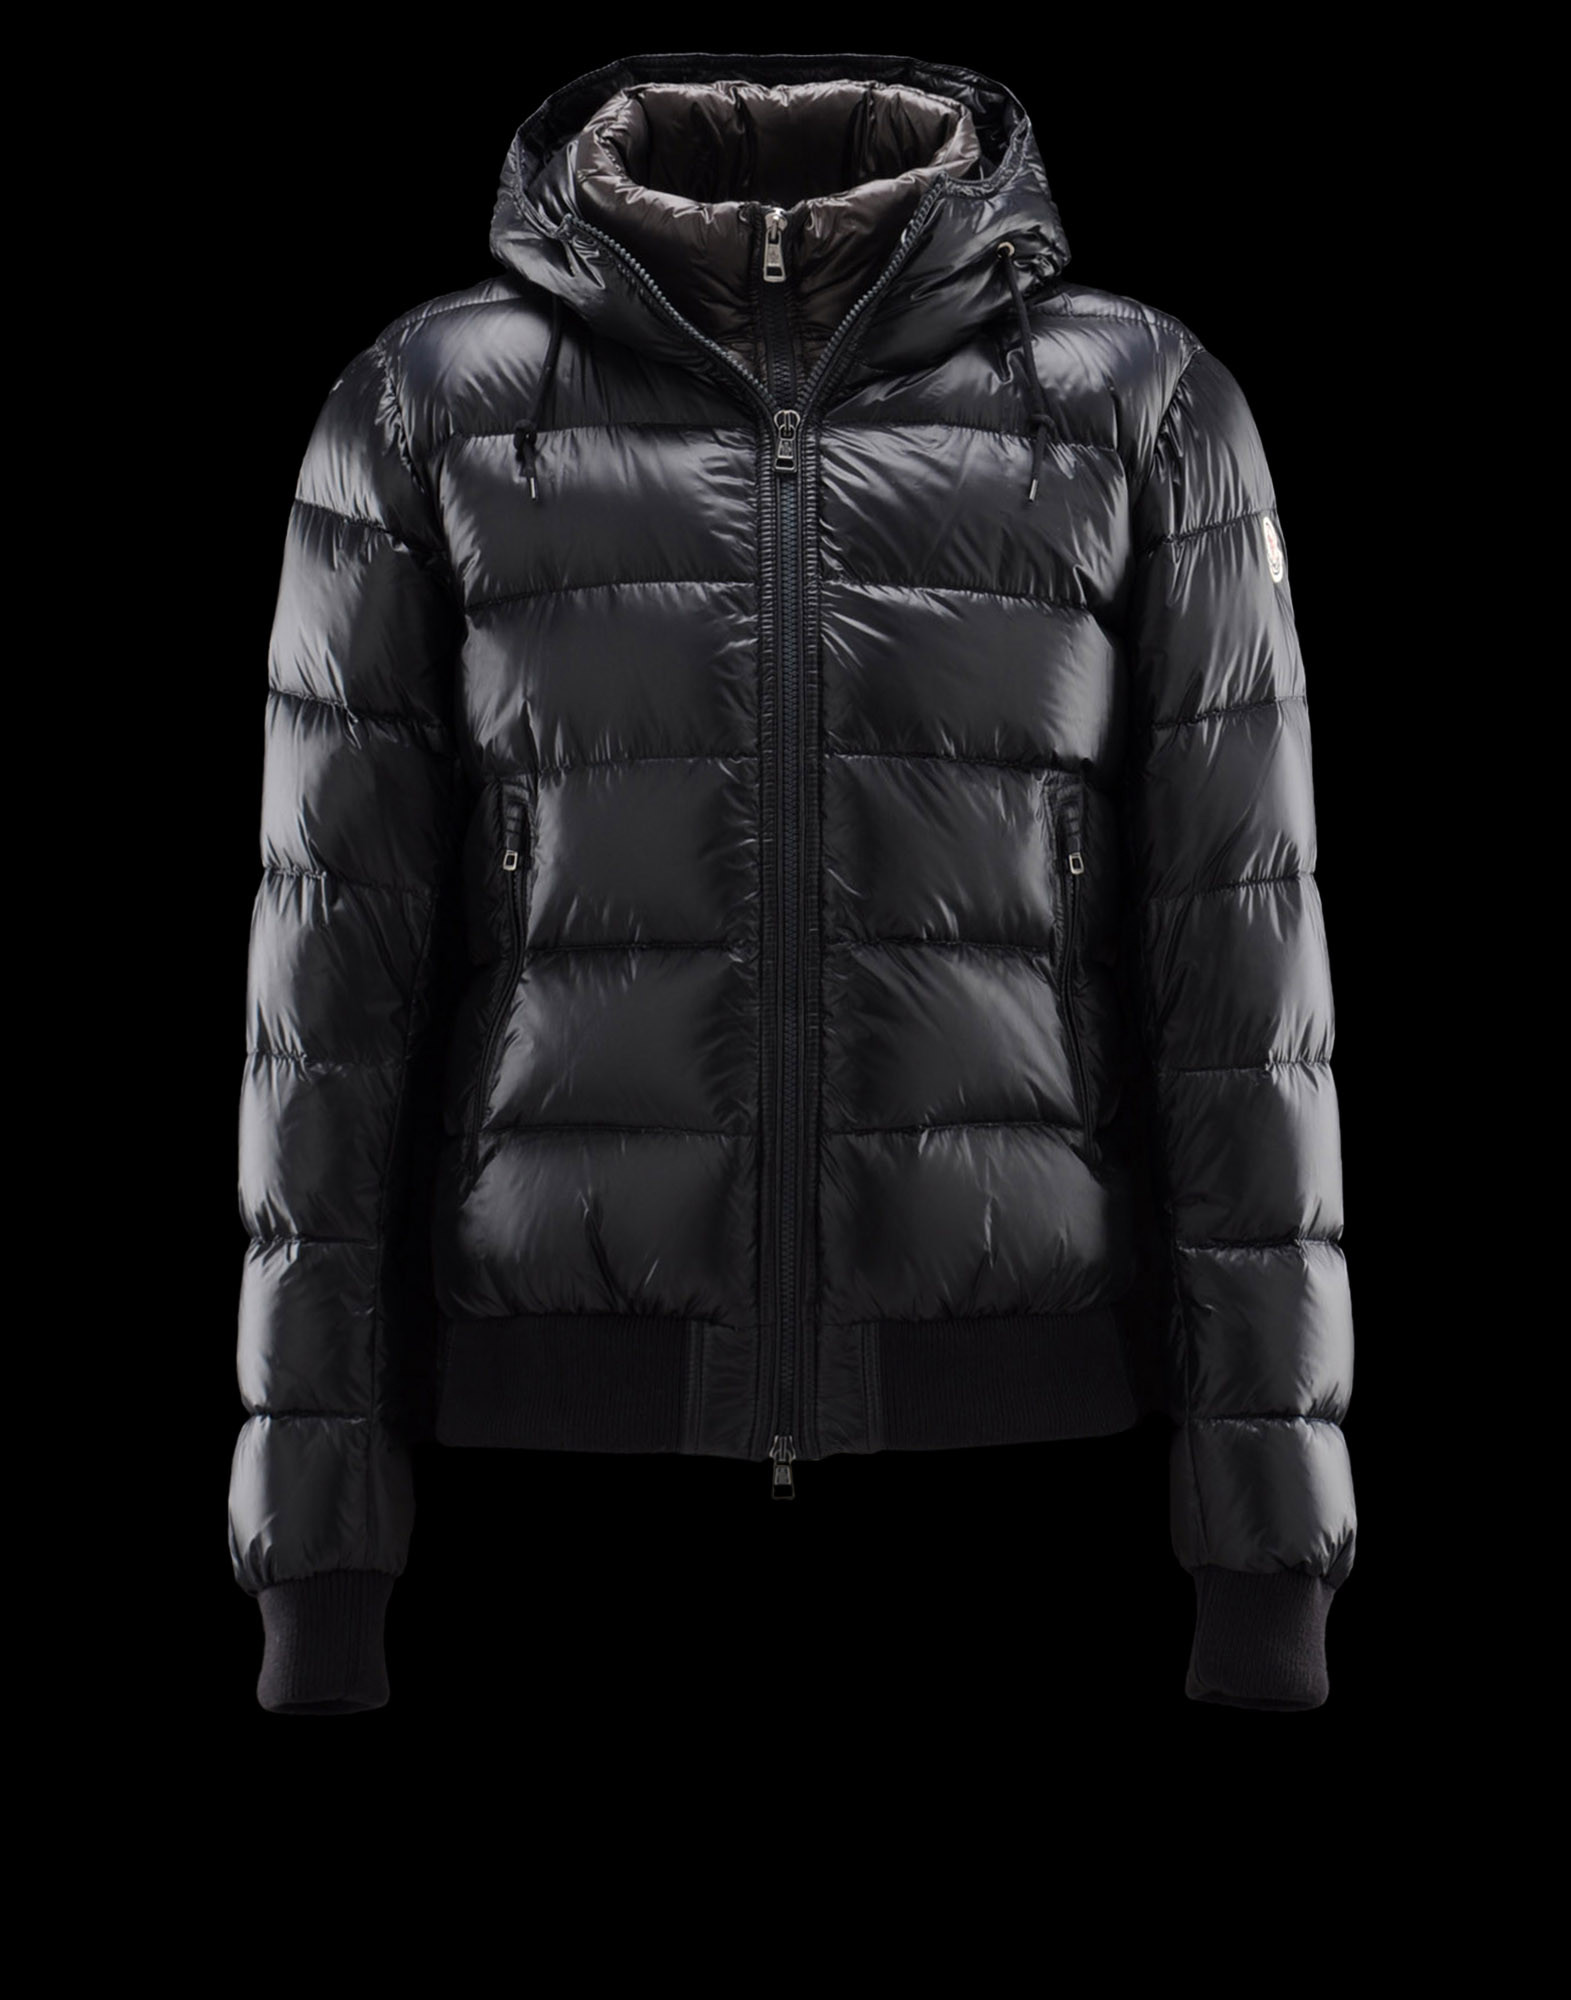 825362 Moncler Outlet Orlando Moncler Store Moncler Jacket For Women  - Canada